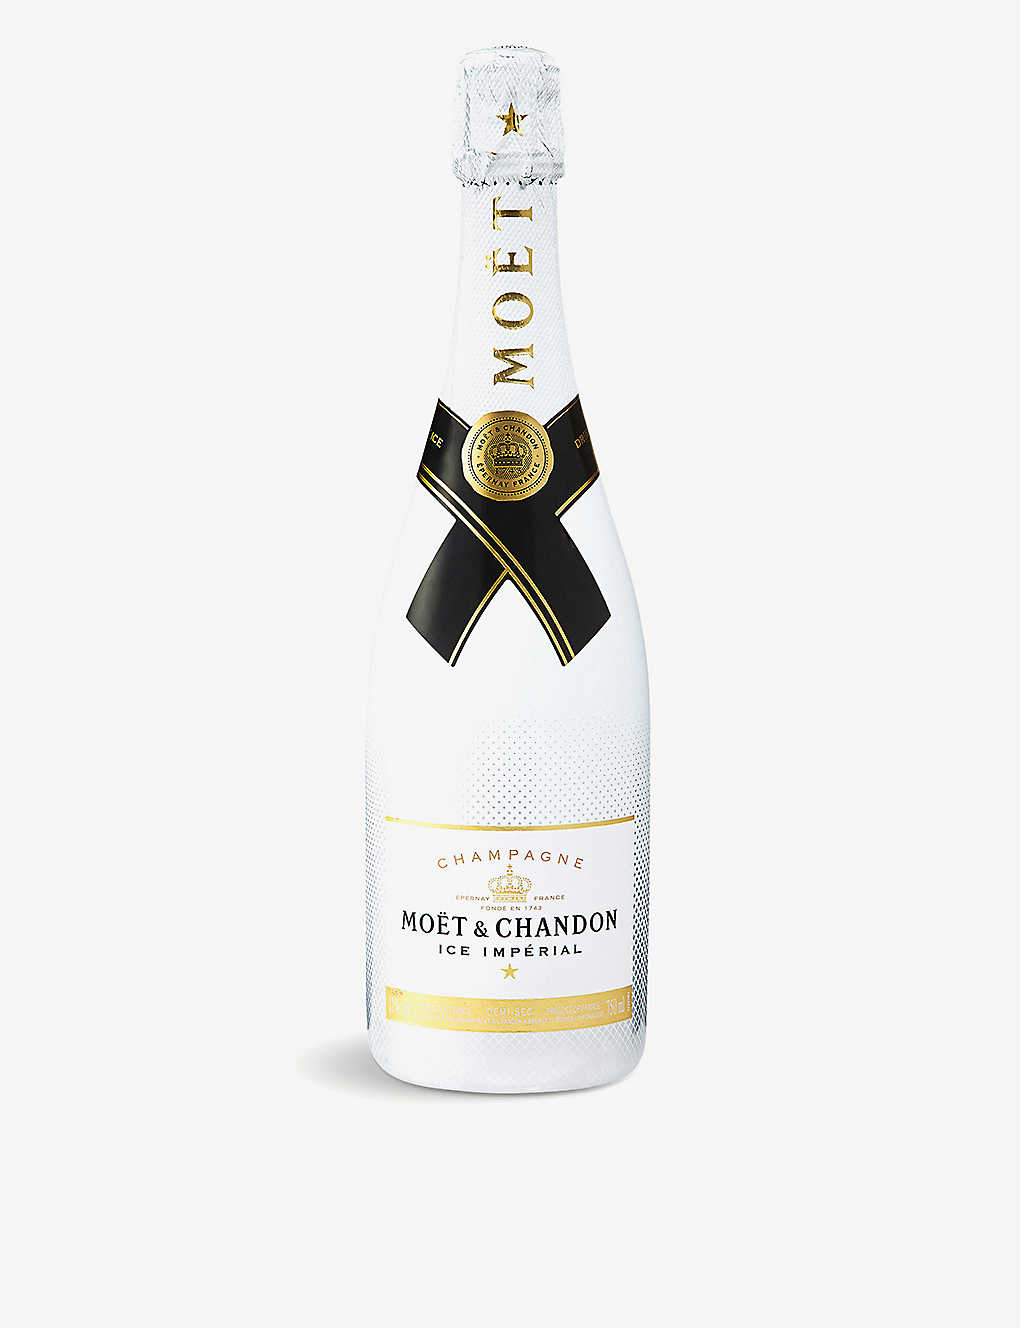 MOET & CHANDON: Ice Impérial NV Champagne 750ml